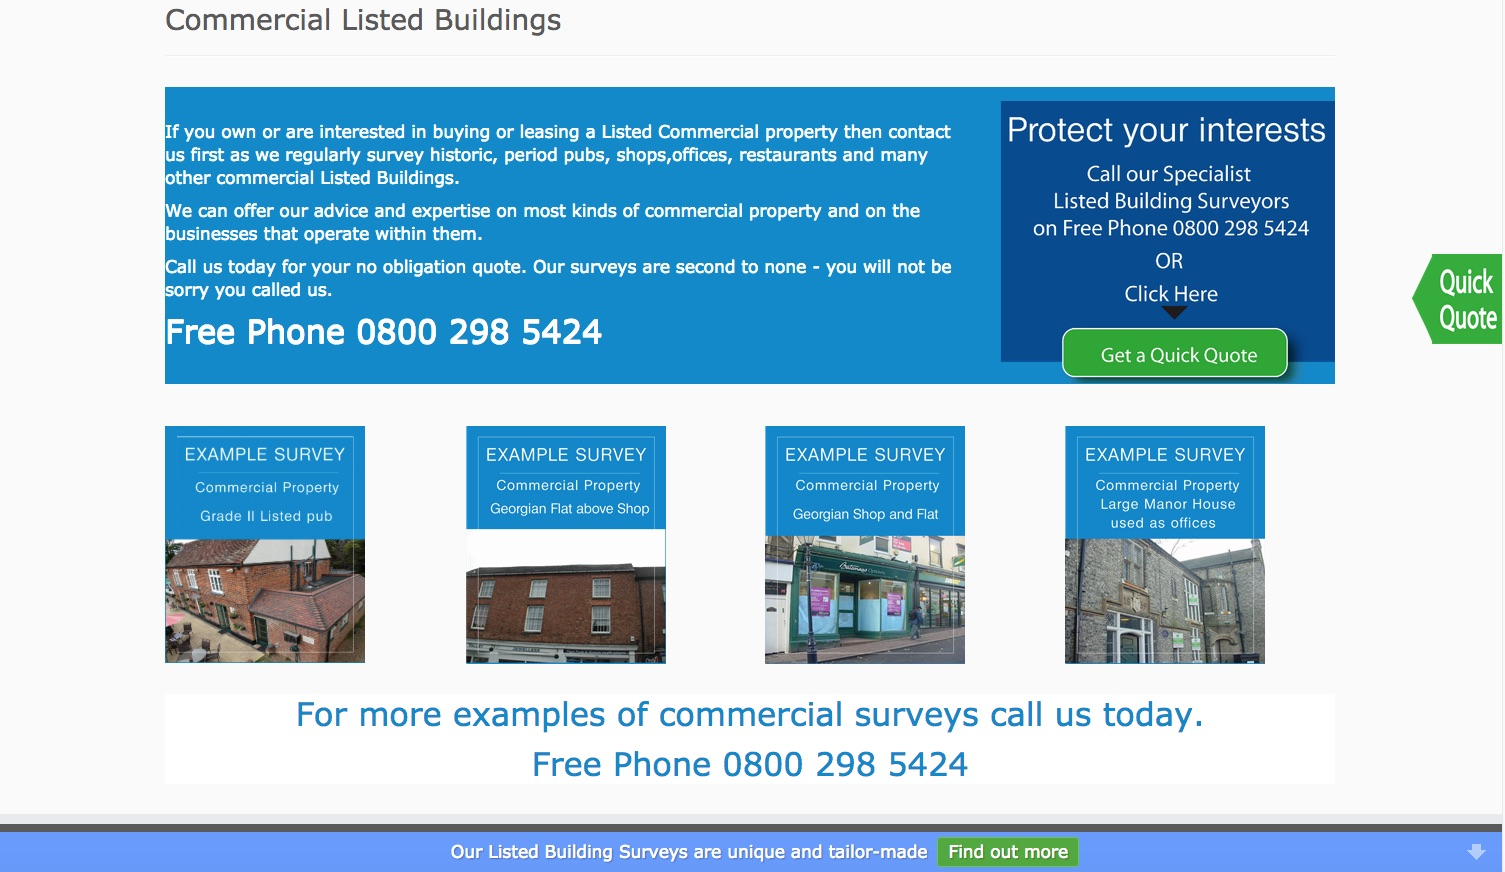 Commercial Listed Buildings